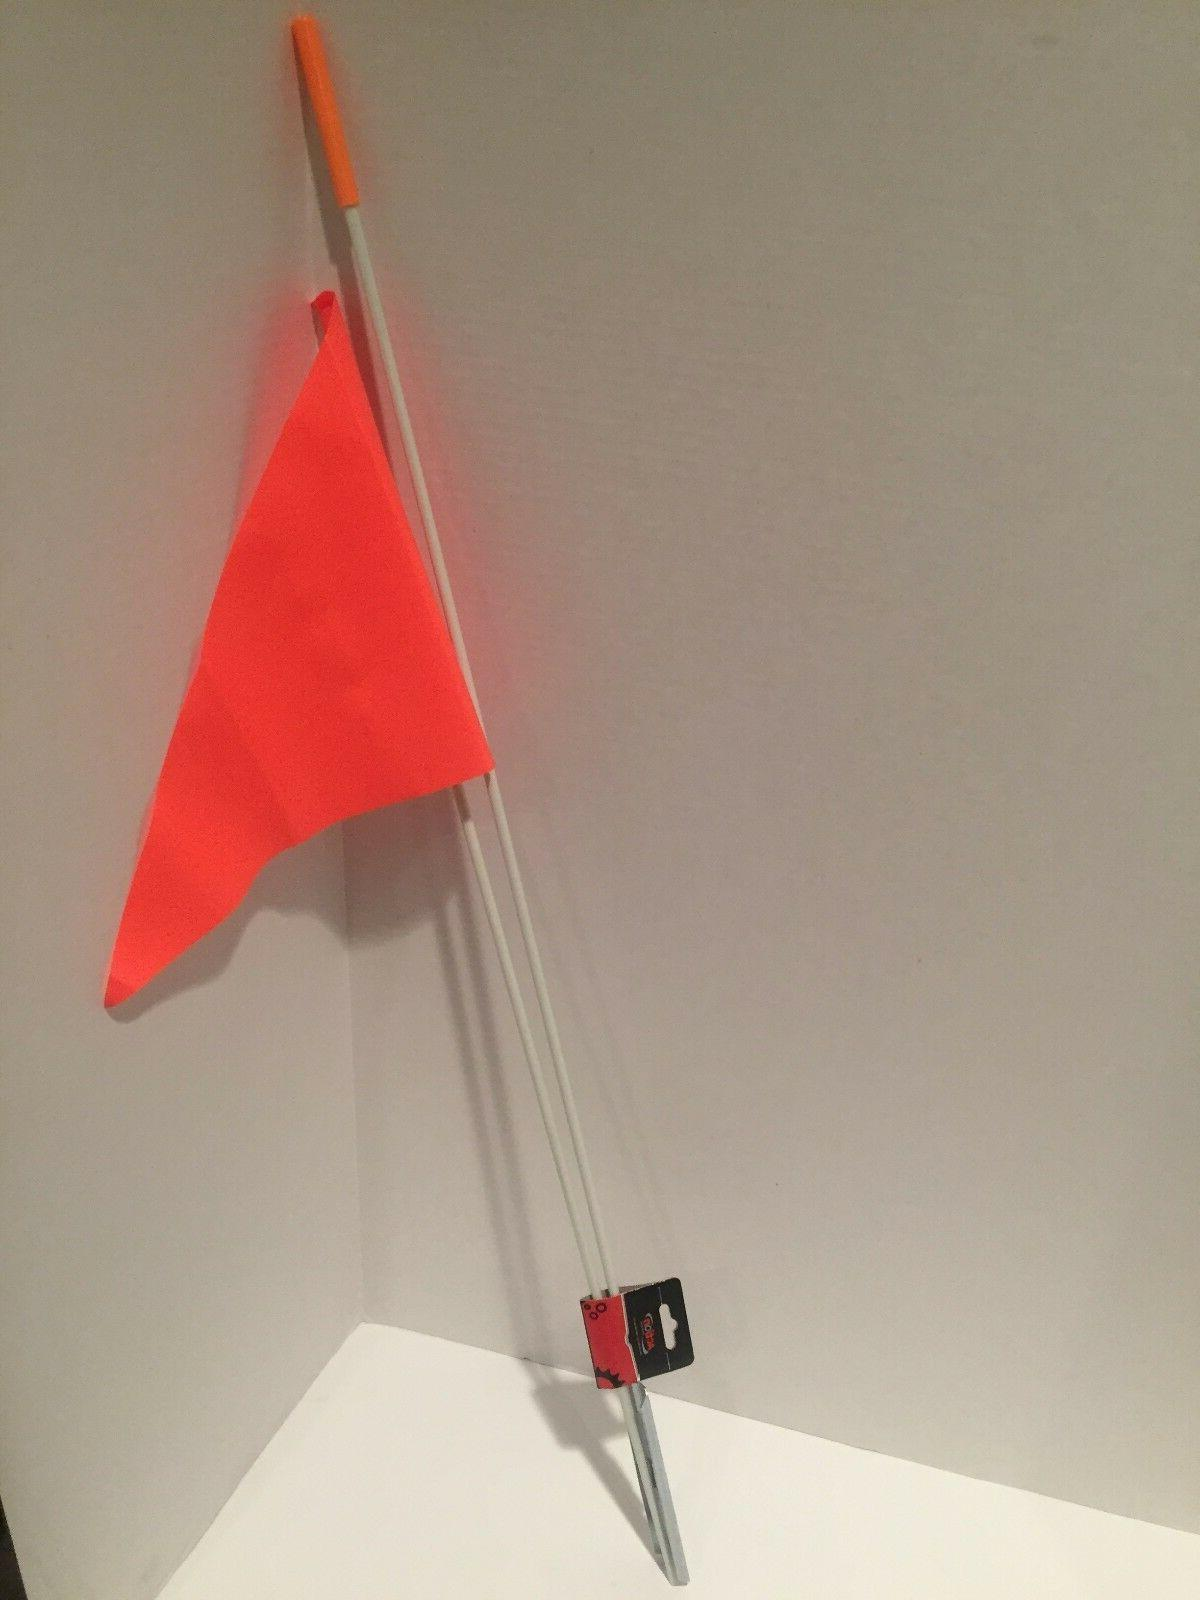 Action Bicycle Safety Flag 59in Orange Bike Axle Mount High